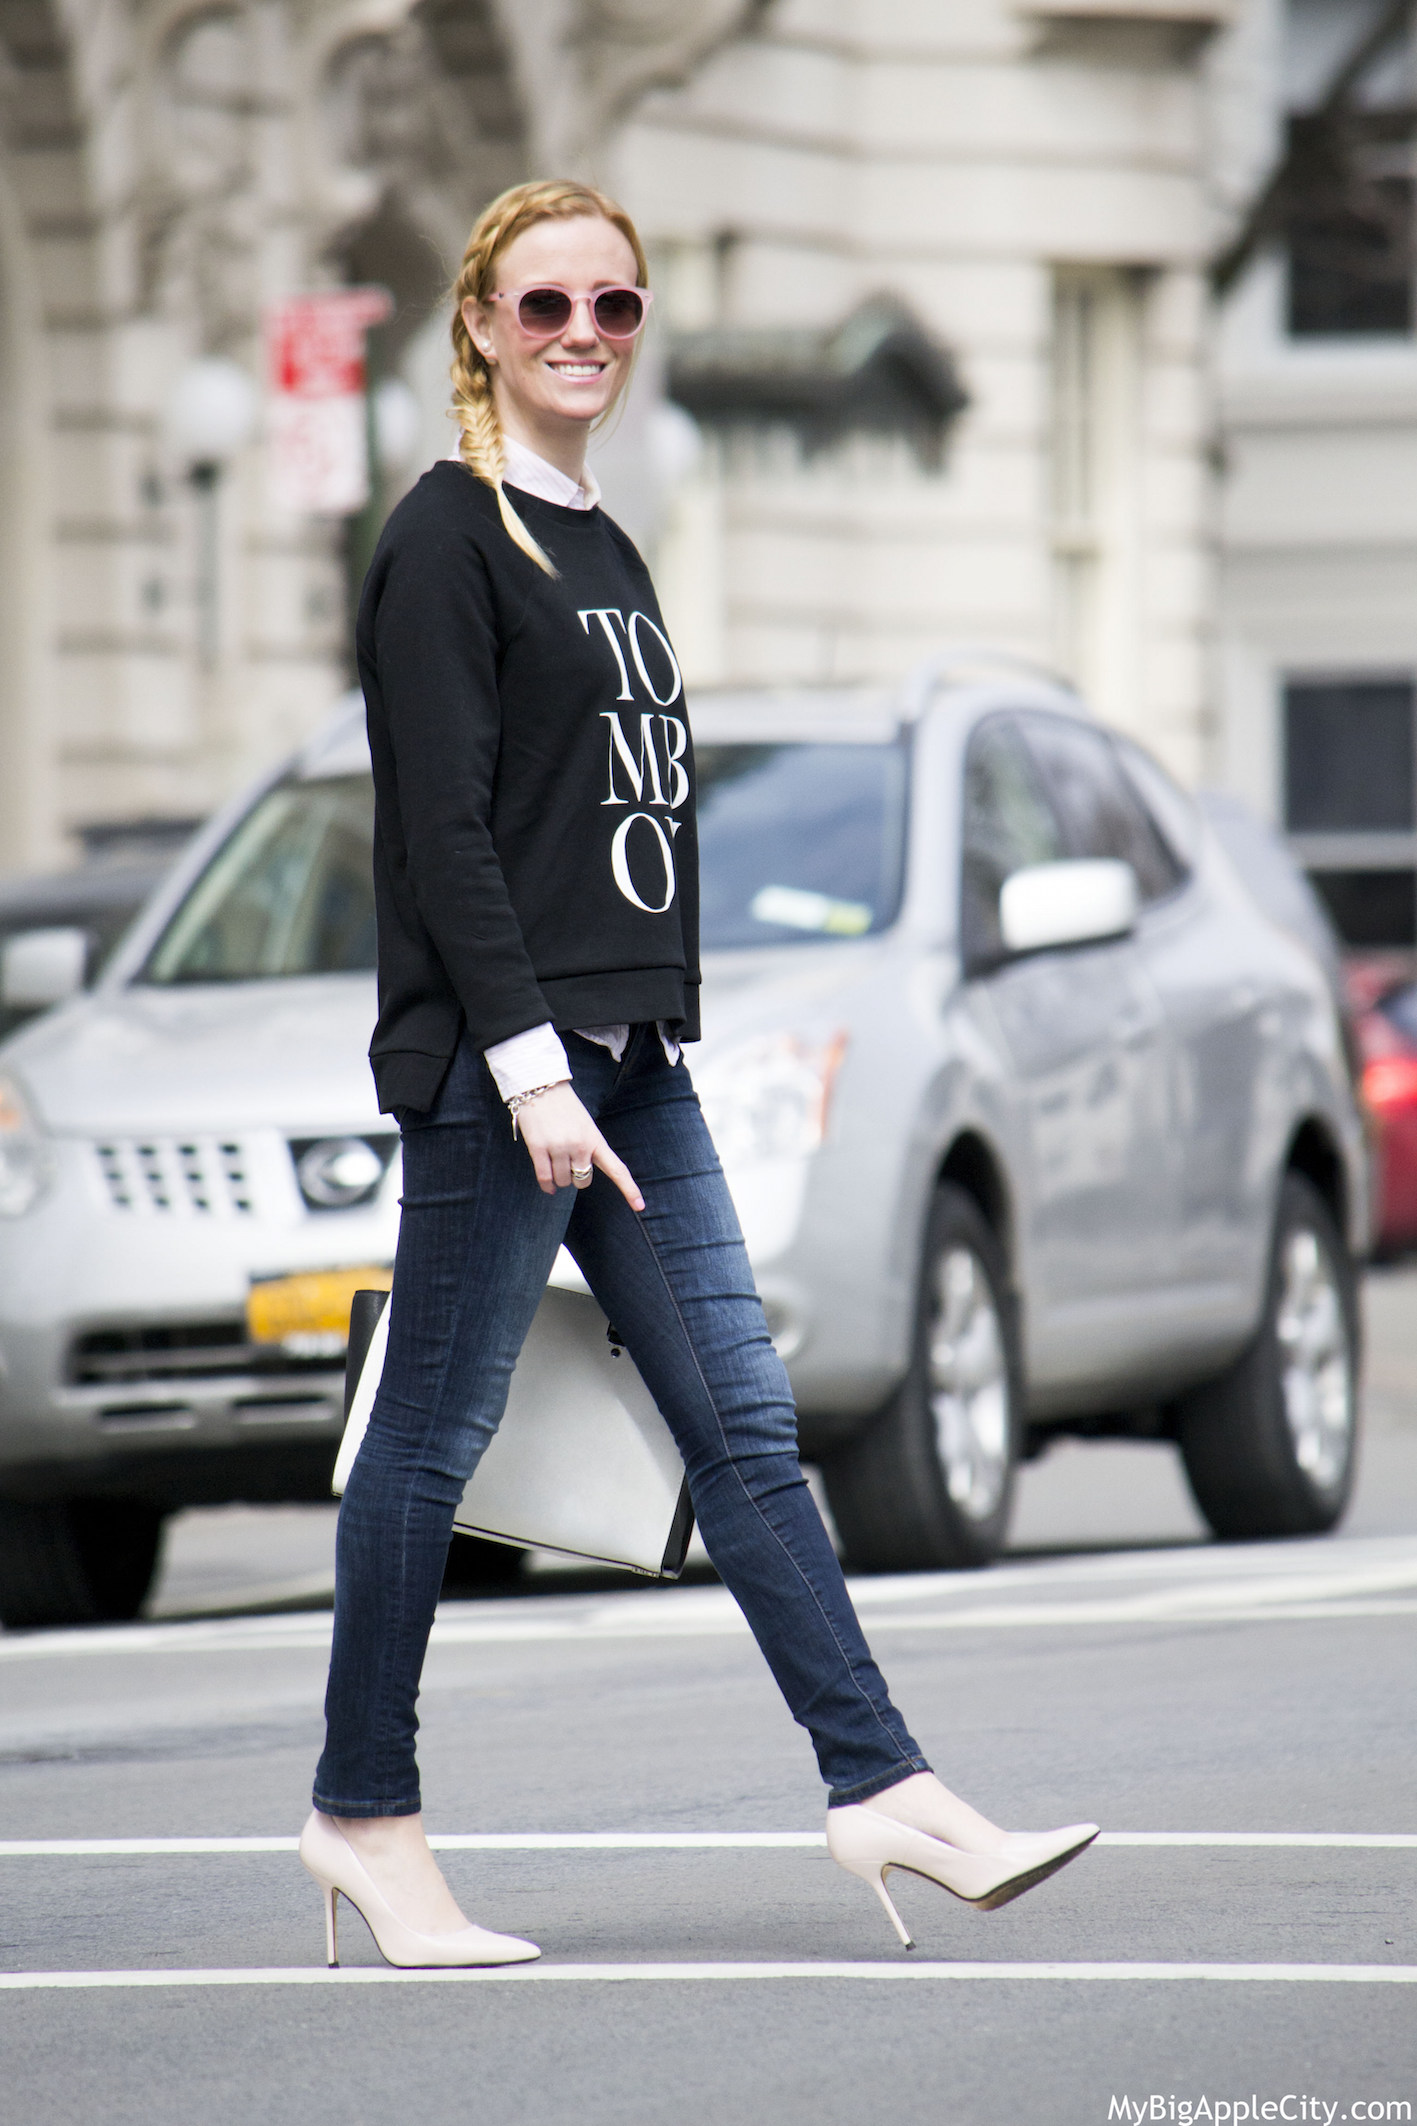 NYC-Fashion-blogger-outfit-streetstyle-OOTD